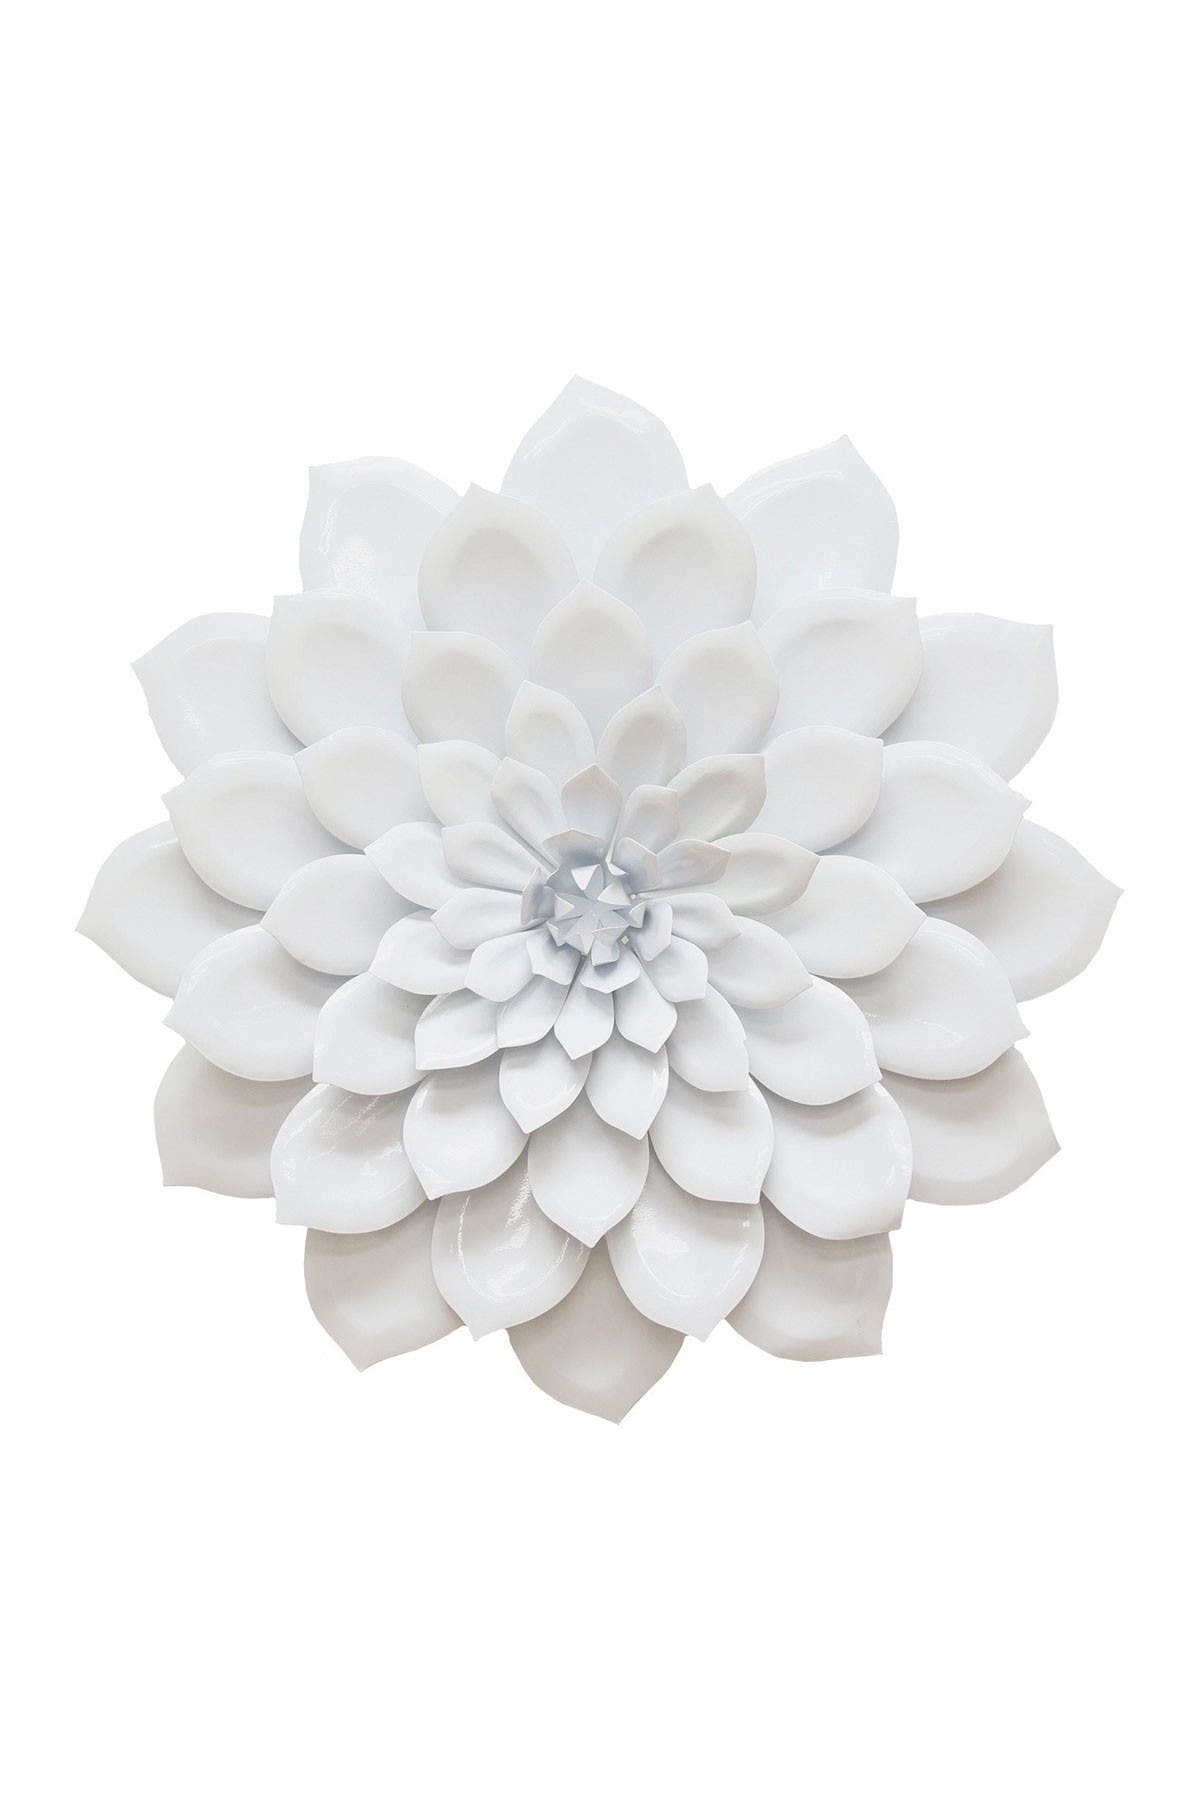 Image of Stratton Home White Layered Flower Wall Decor